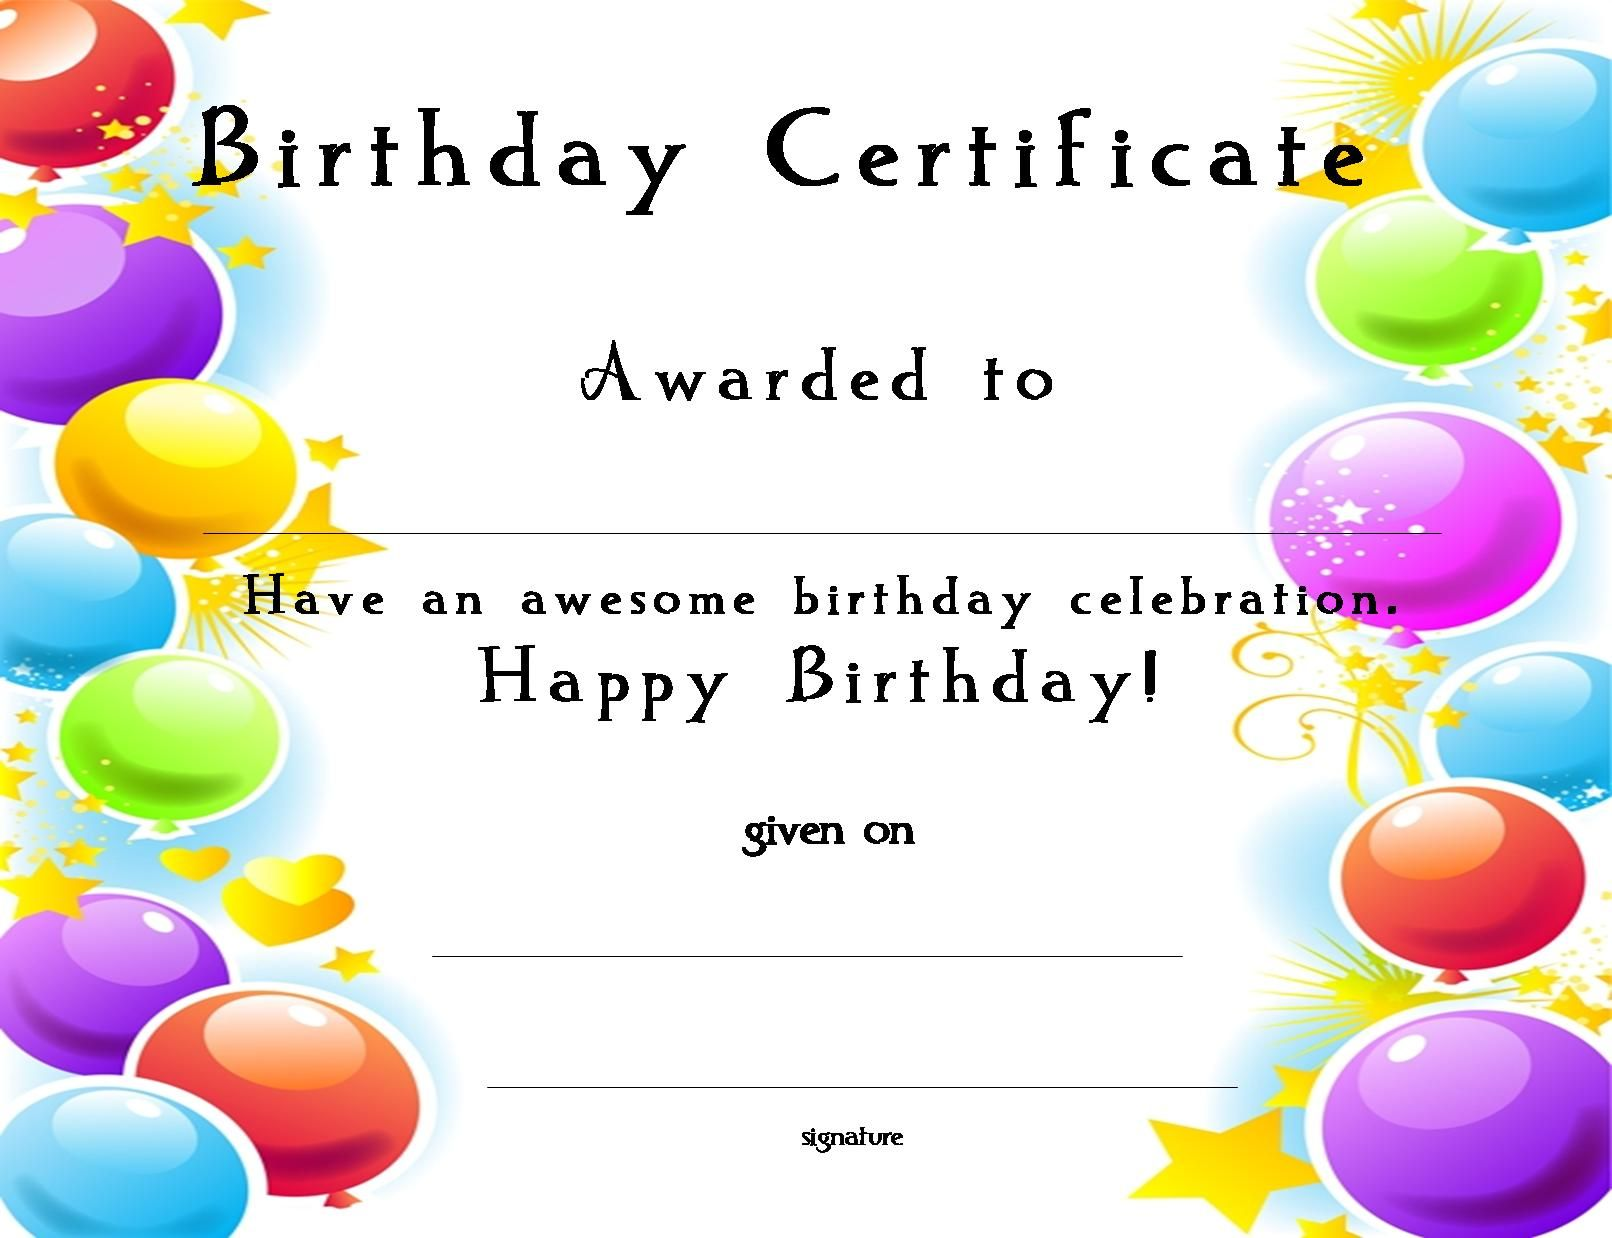 Certificatetemplate happy birthday certificate for your certificate template for kids free printable certificate templates birthday certificate templatesawesome site for bday and other free certificates for 1betcityfo Gallery